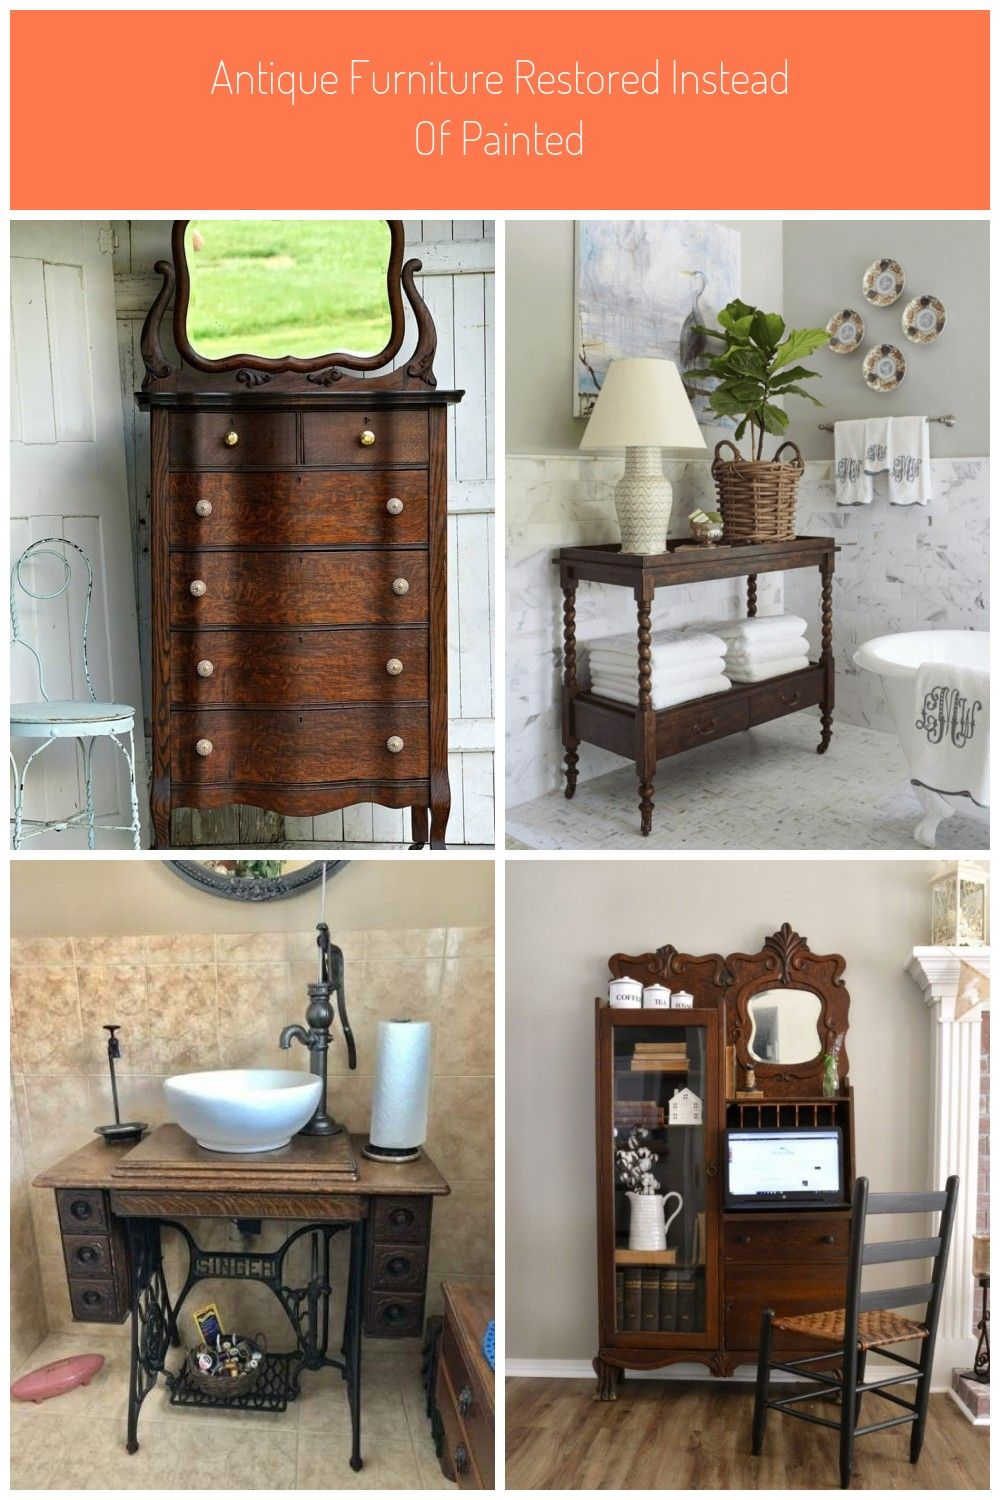 Antique Furniture Restored Instead Of Painted Antique Antiquefurniture Restore Oak Antique Furniture Antique Furniture Restored Instead Of Painted